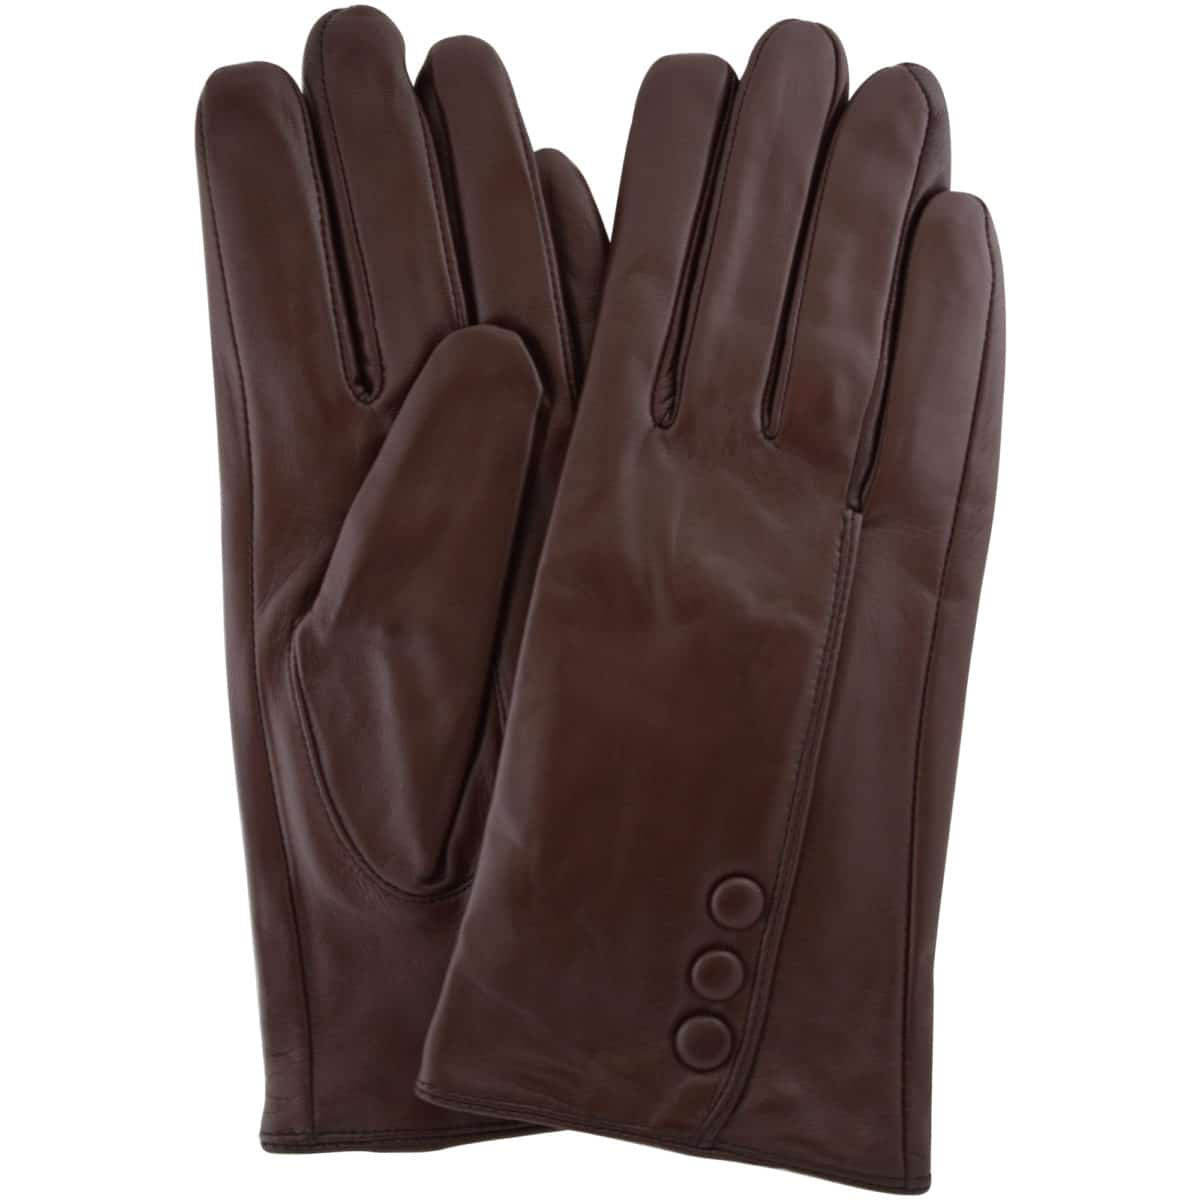 Rhian - Leather Gloves Triple Button Feature - Brown